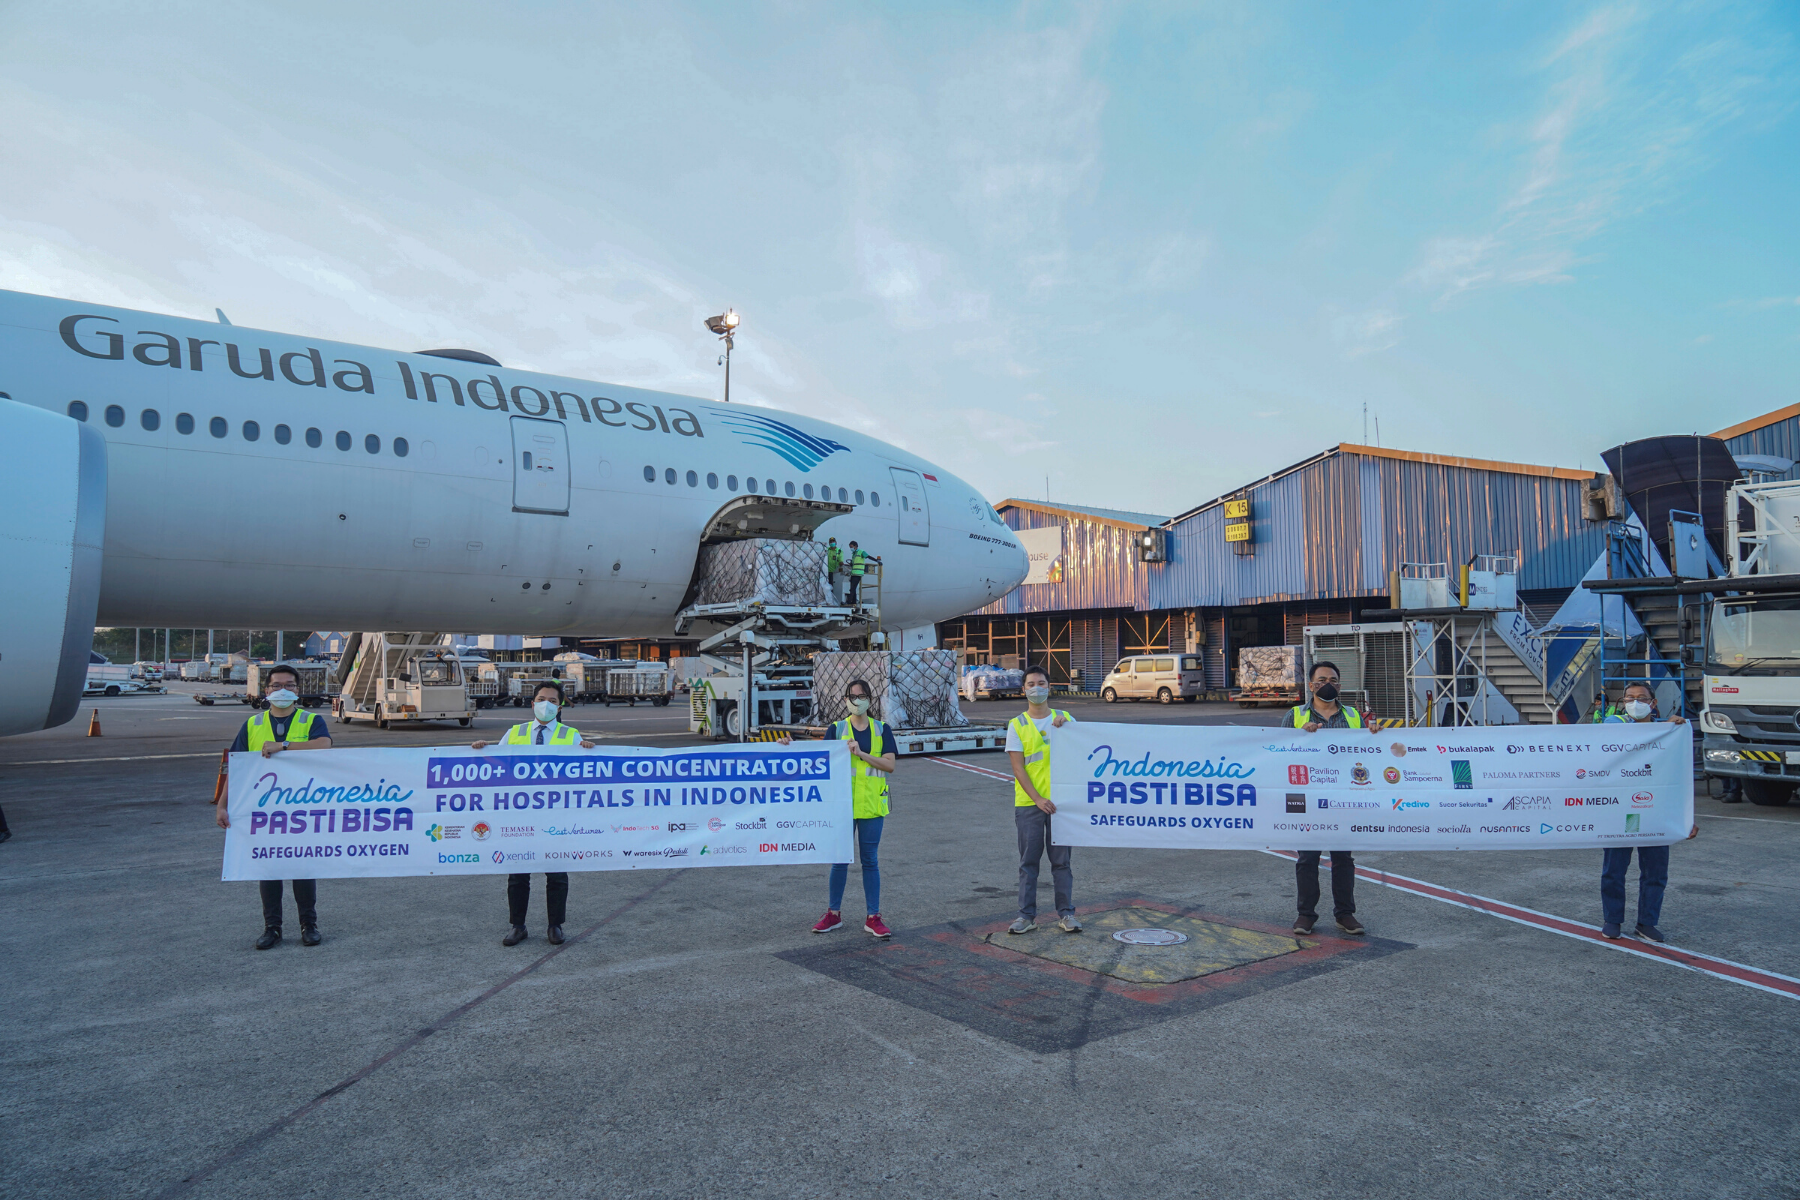 Indonesia PASTI BISA Safeguards Oxygen raises over US$ 1 million to donate 1,450 oxygen concentrators for COVID-19 patients